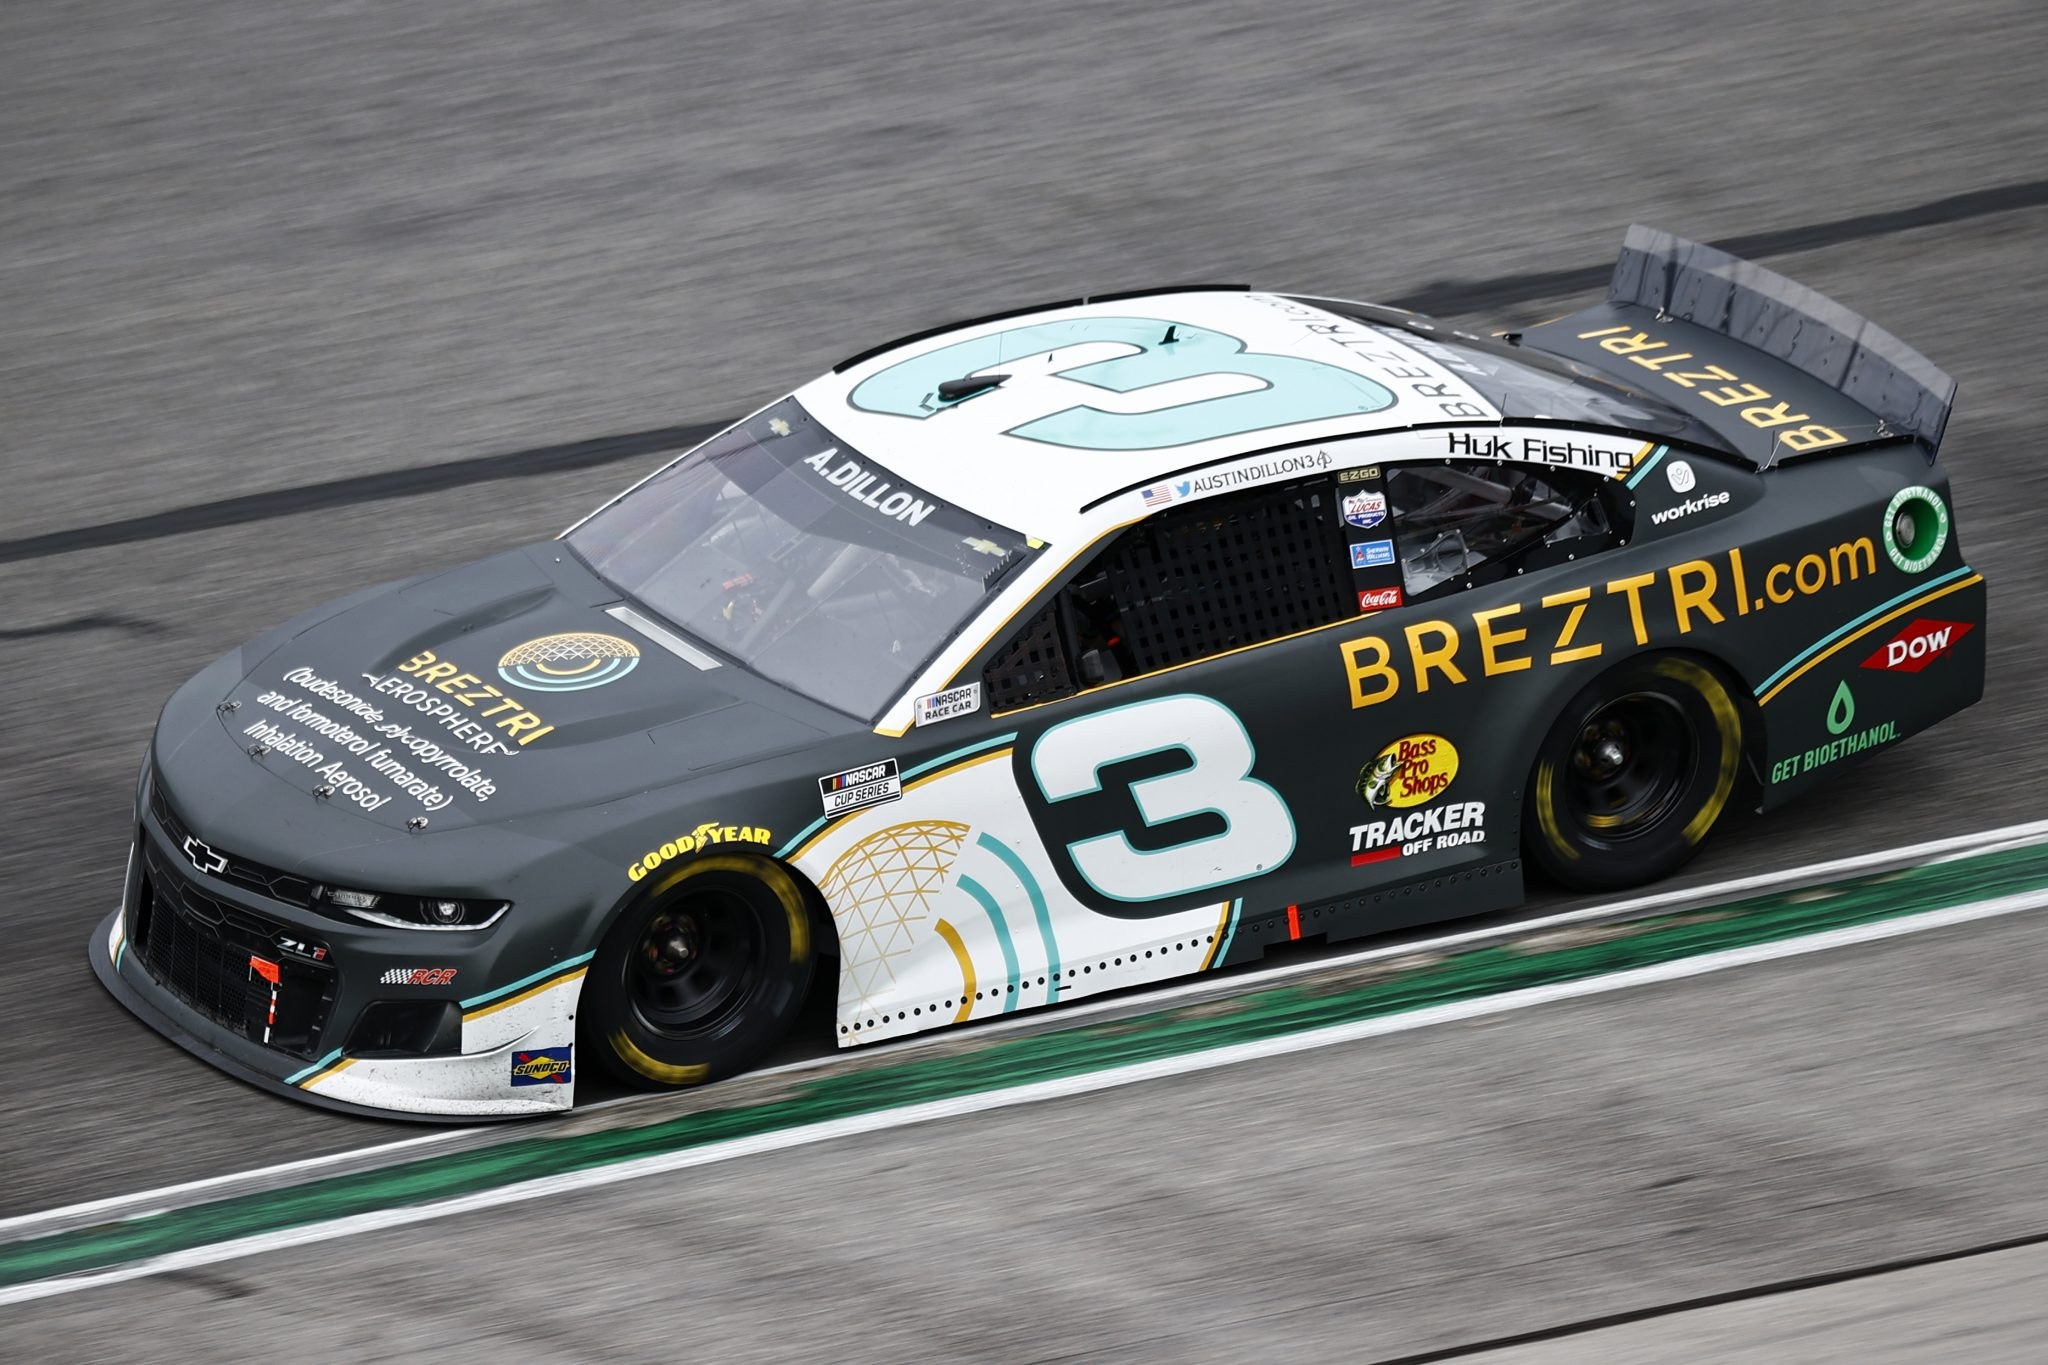 HAMPTON, GEORGIA - JULY 11: Austin Dillon, driver of the #3 BREZTRI Chevrolet, drives during the NASCAR Cup Series Quaker State 400 presented by Walmart at Atlanta Motor Speedway on July 11, 2021 in Hampton, Georgia. (Photo by Jared C. Tilton/Getty Images)   Getty Images